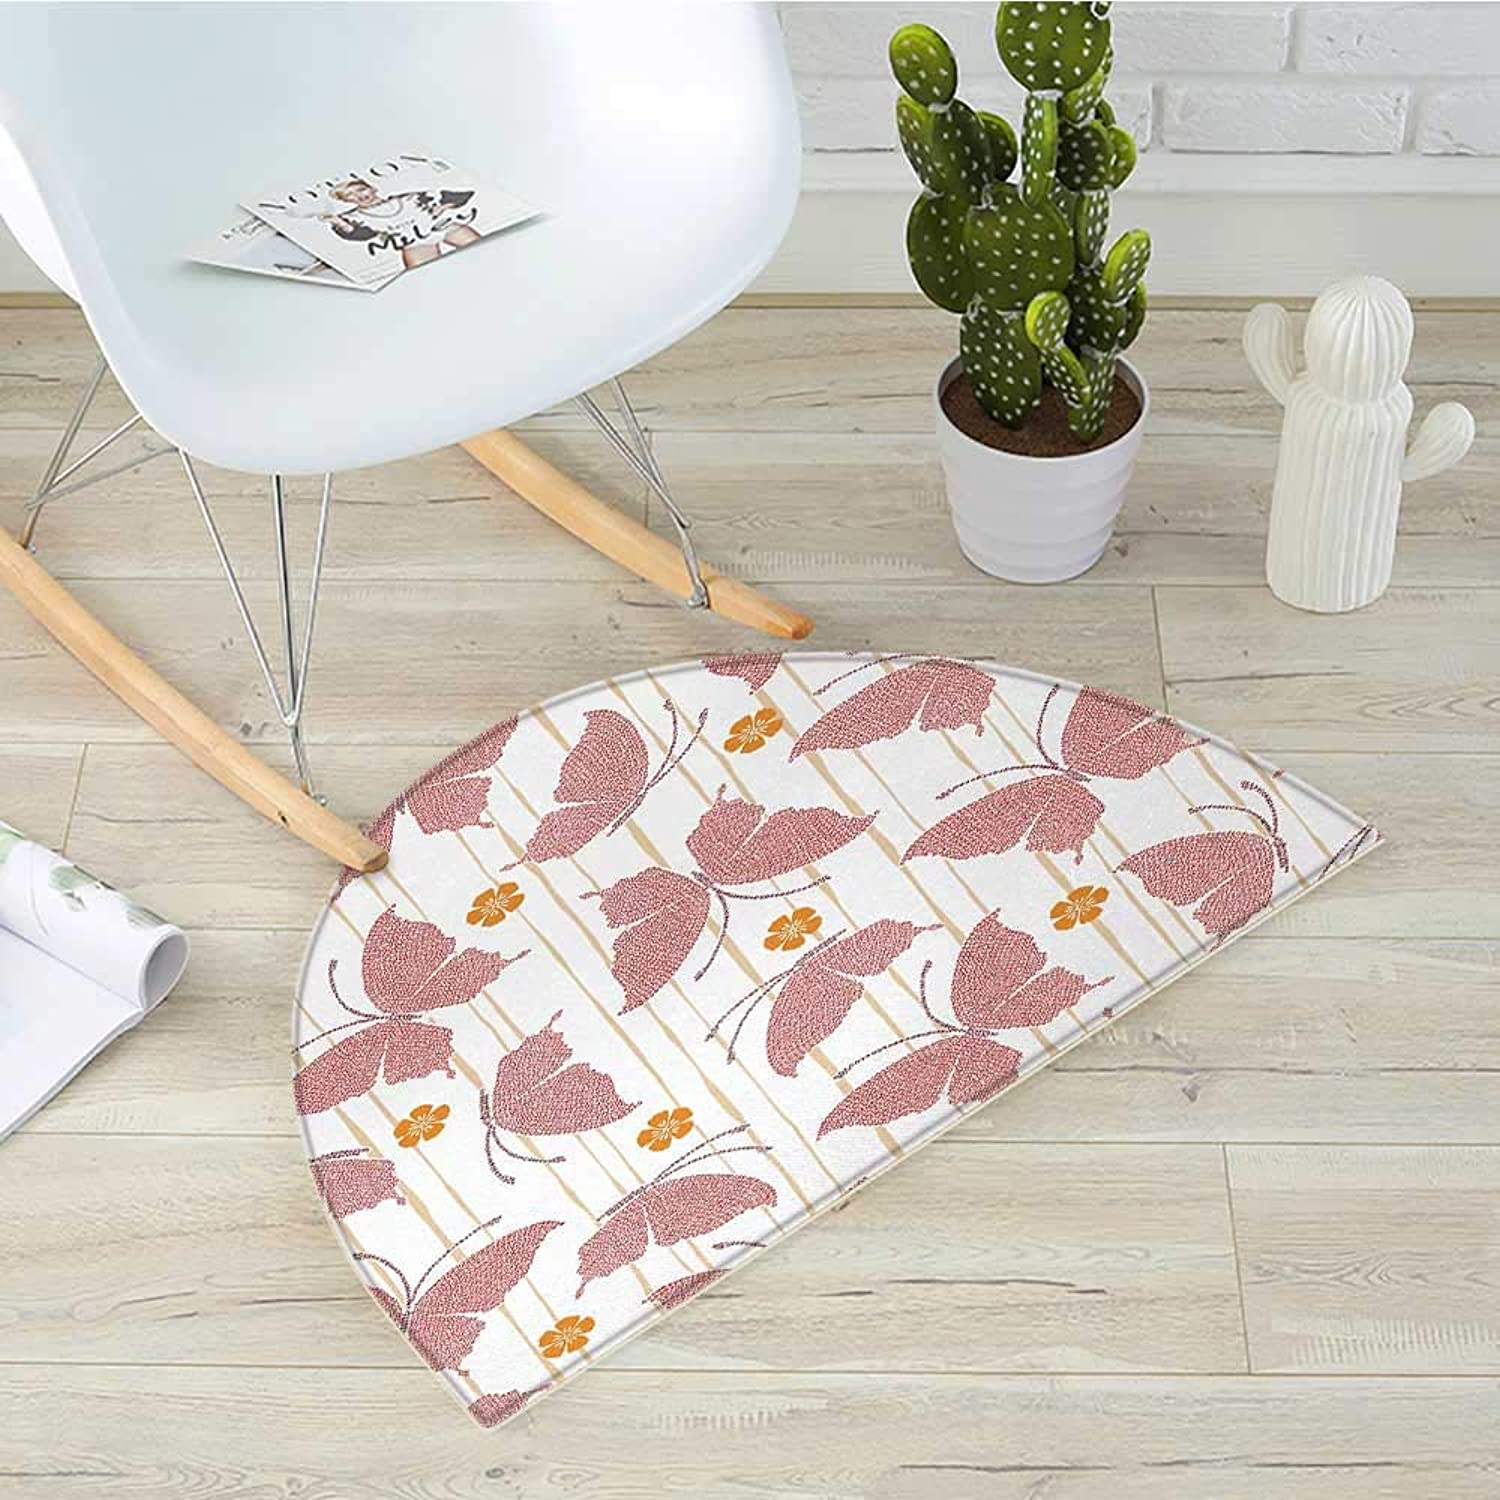 Butterfly Semicircular CushionPattern of Butterflies Small Flowers with Artistic Digital Dots Stripes Entry Door Mat H 39.3  xD 59  Red orange Cream